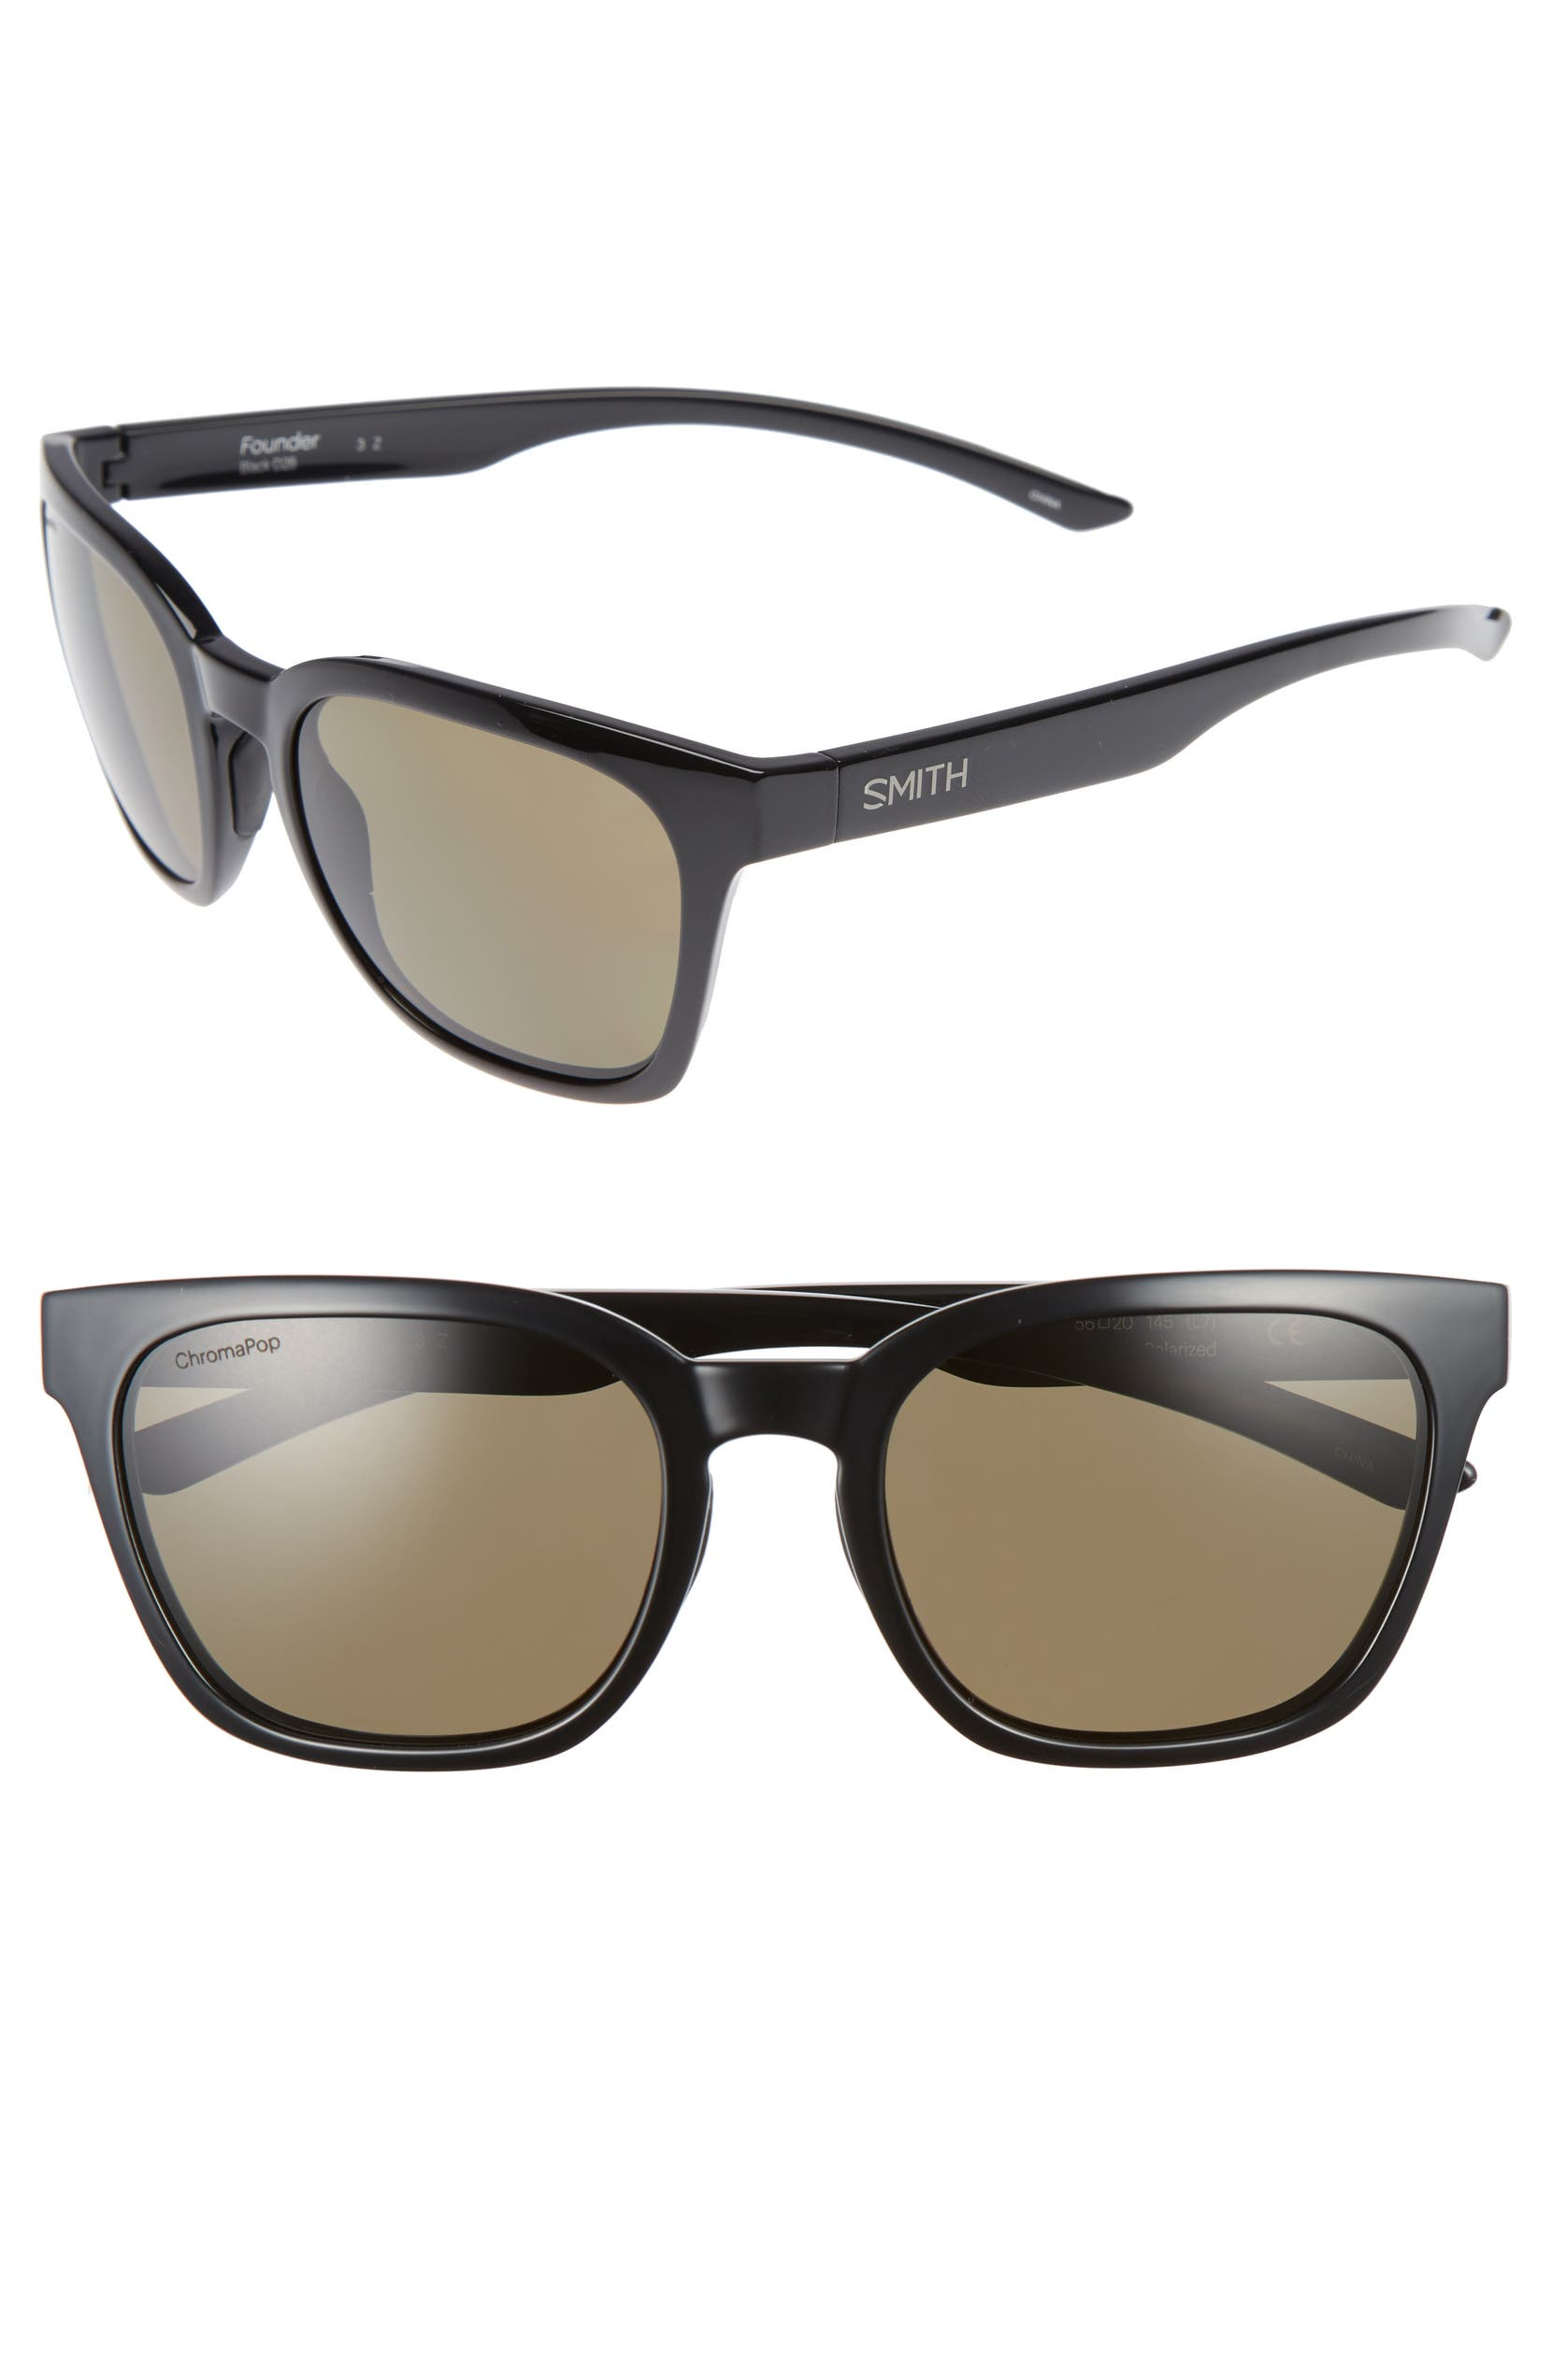 b3c9bcdade4 Smith Founder 55mm ChromaPop™ Polarized Sunglasses